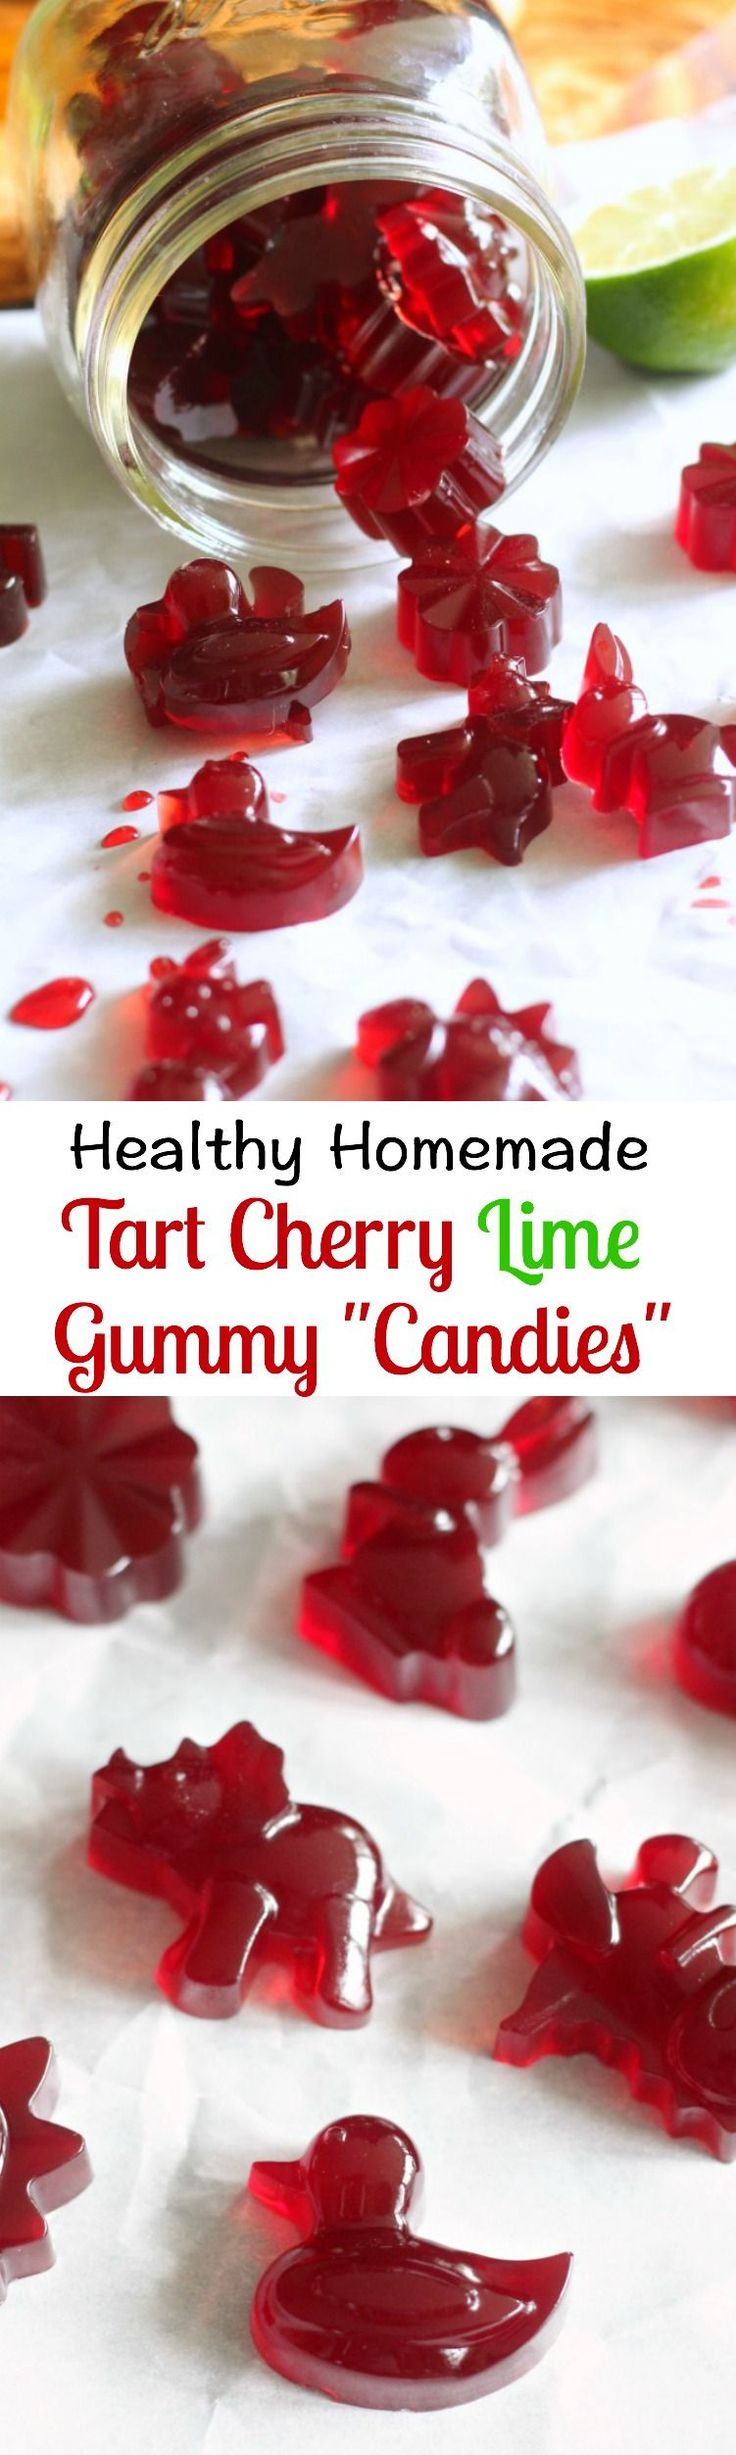 Healthy Paleo Homemade Tart Cherry Lime Gummy Candies made with grass fed gelatin - paleo and gut healing!